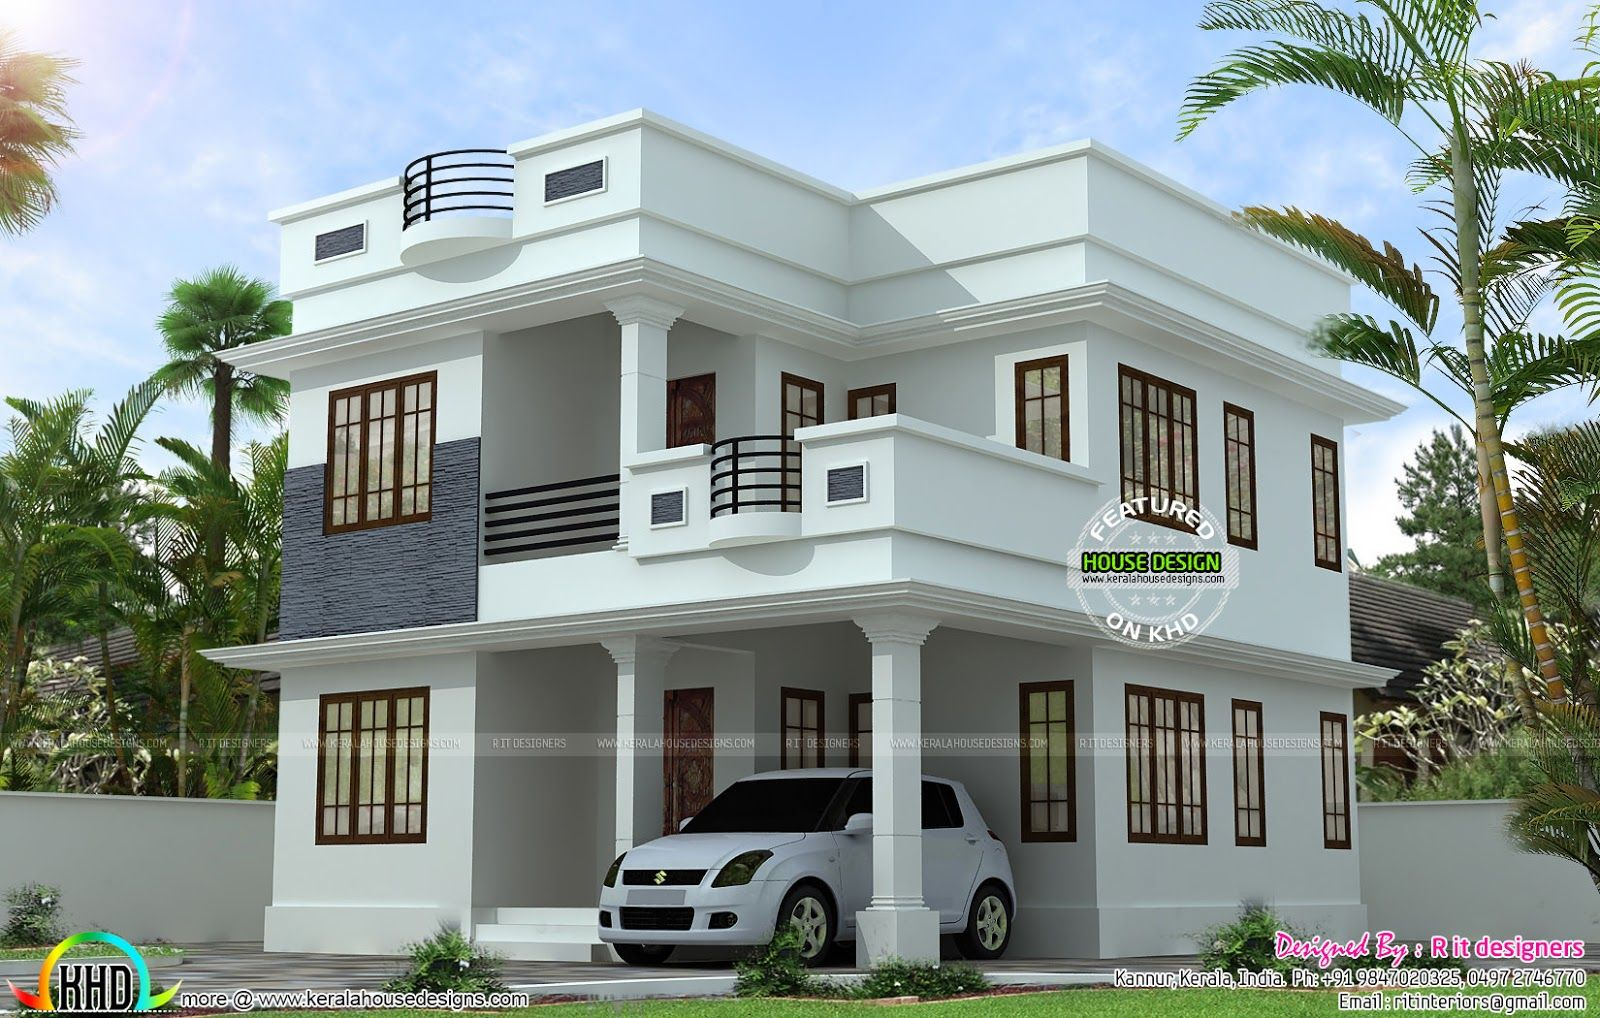 Neat and simple small house planKerala home design and floor